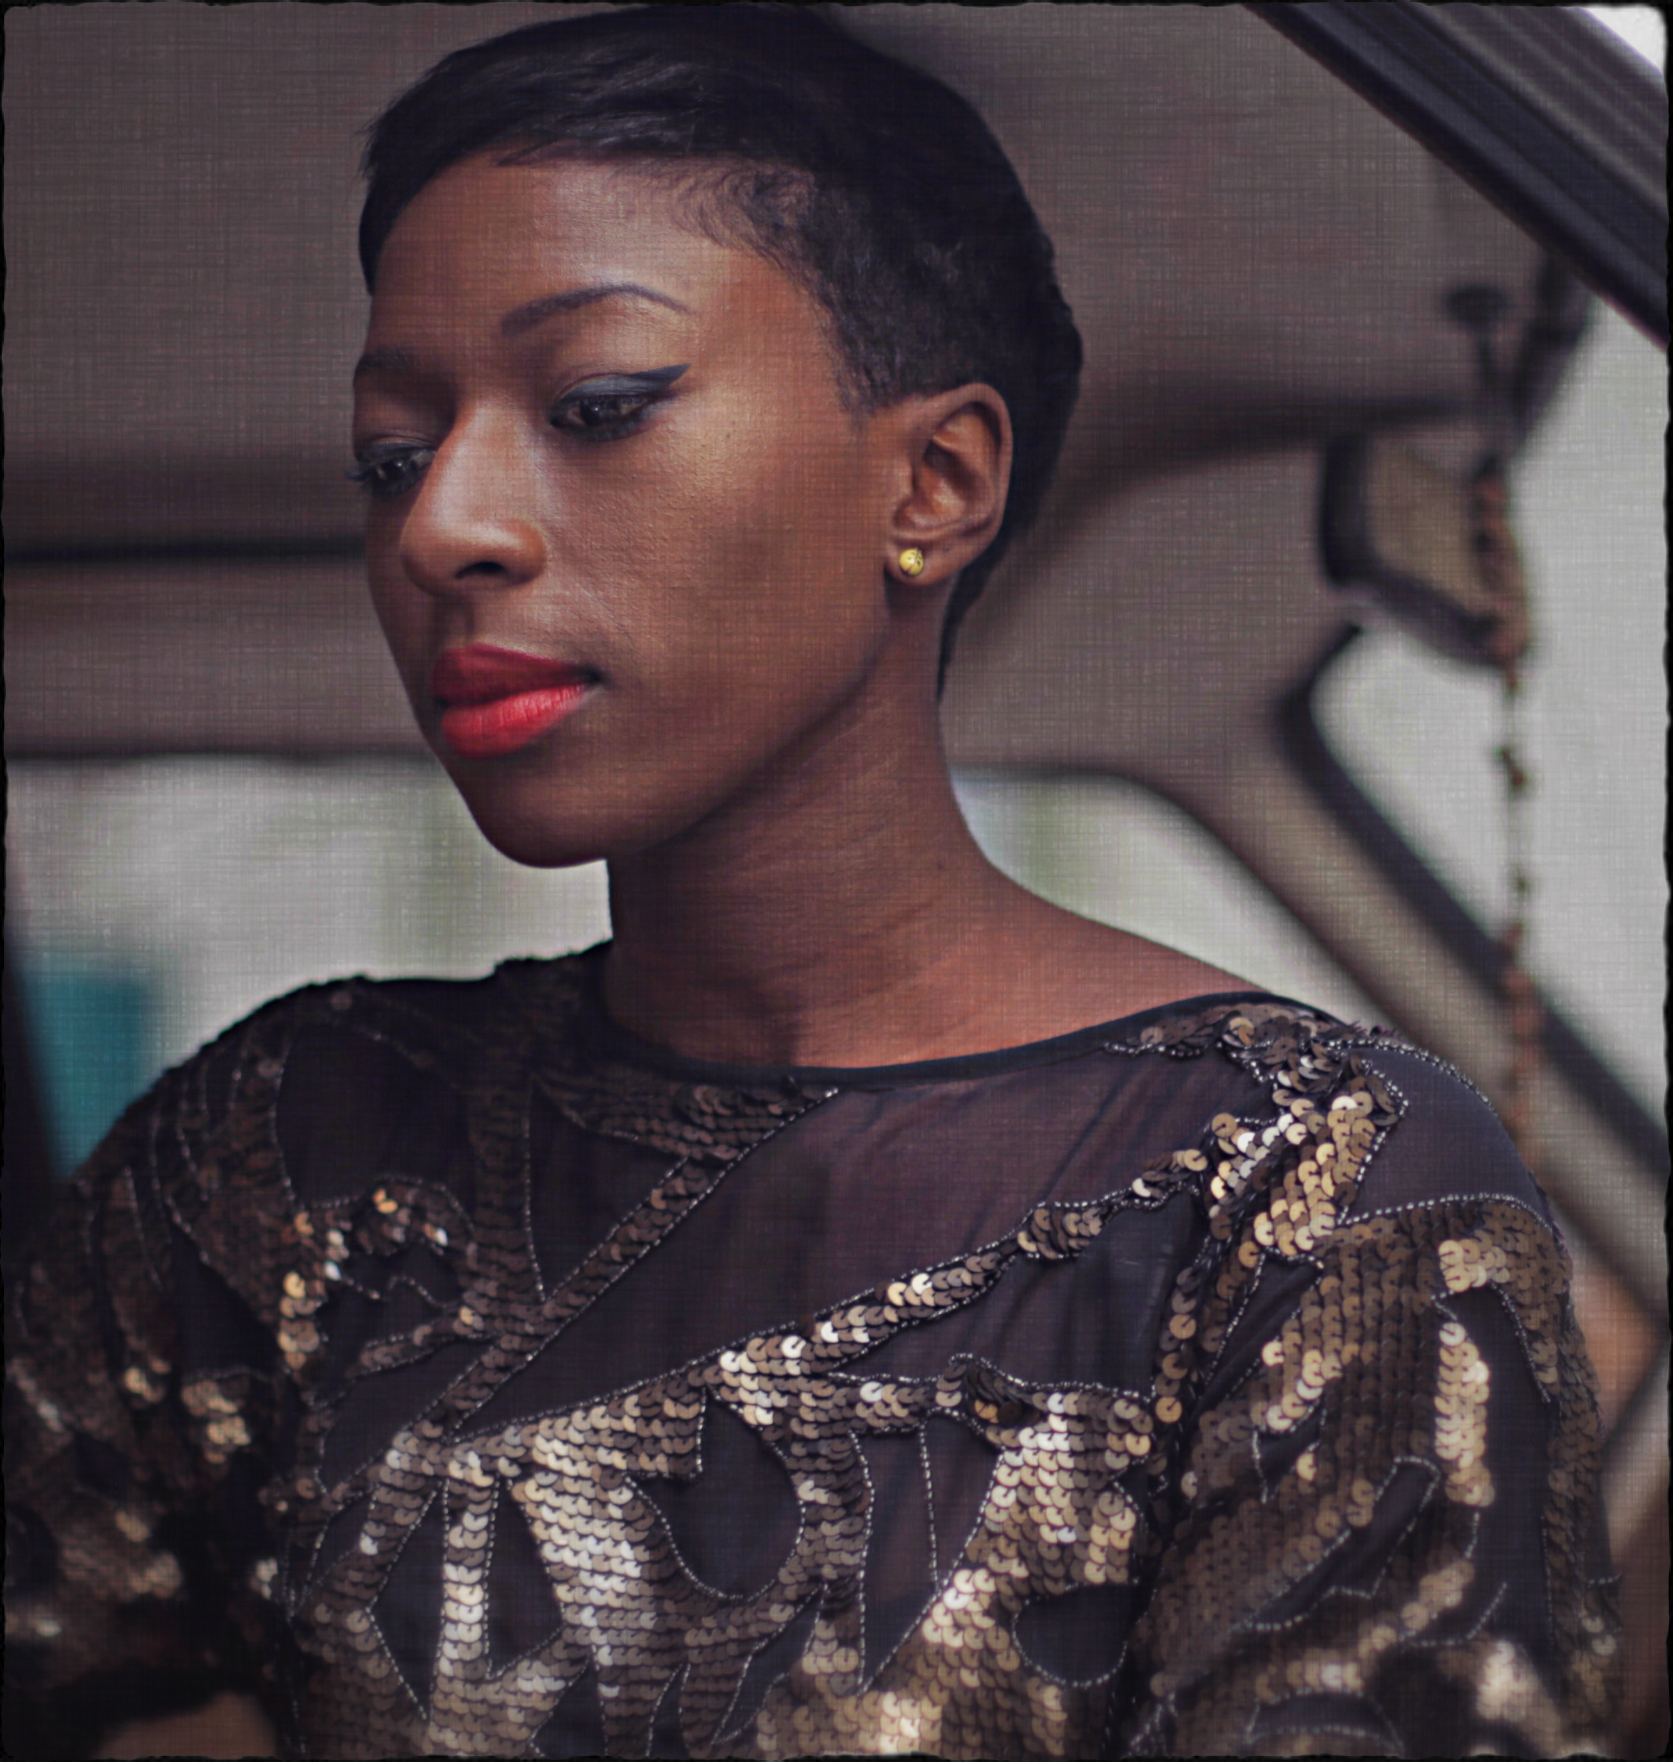 Szjerdene – Go [Video]